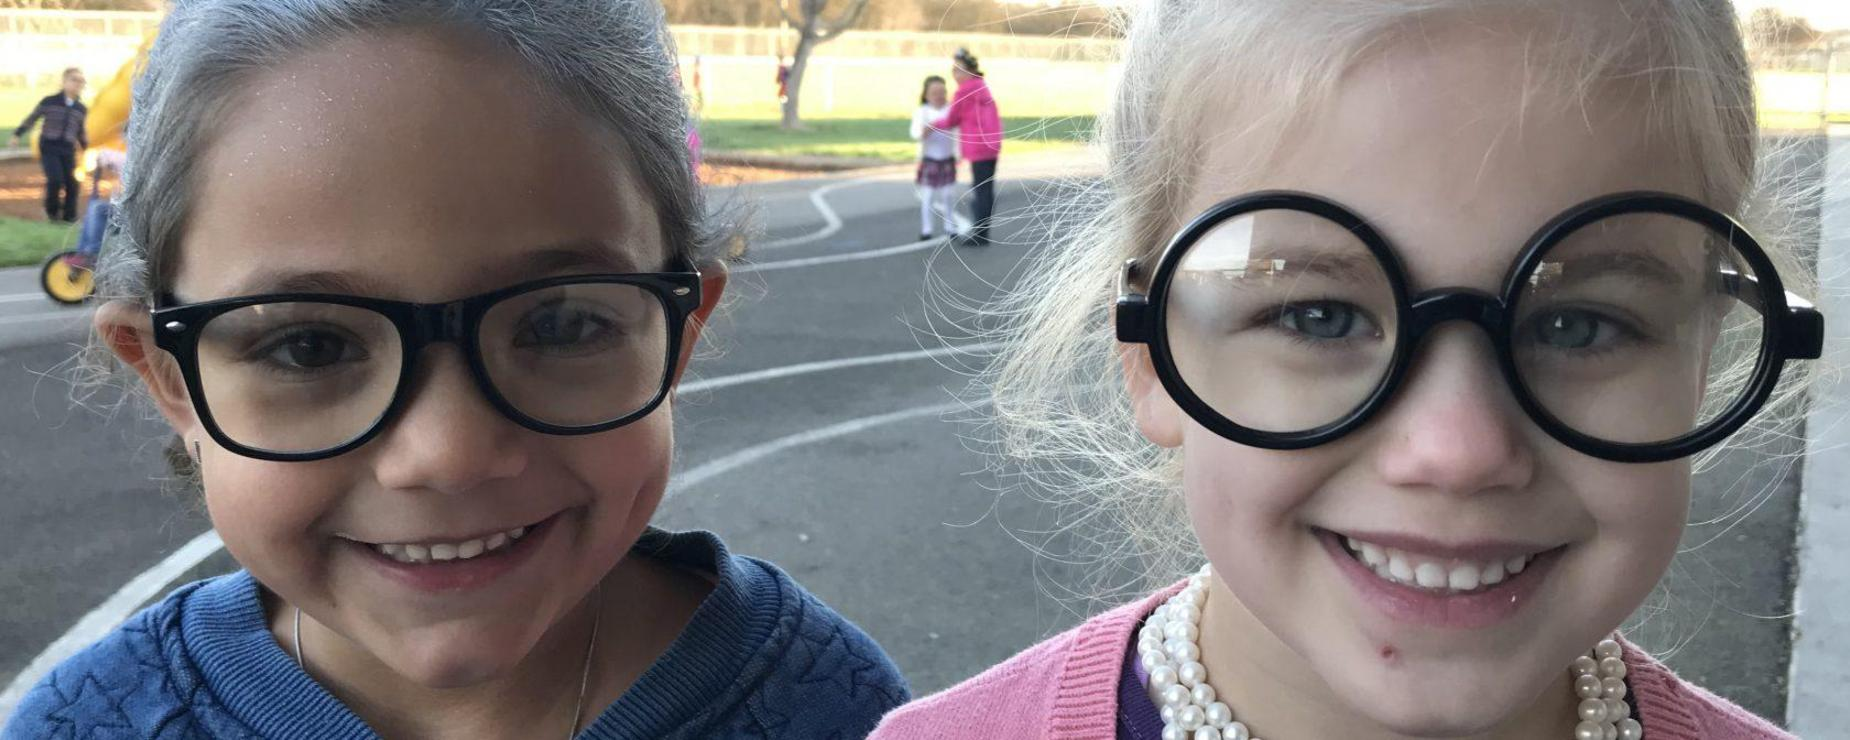 two students with glasses